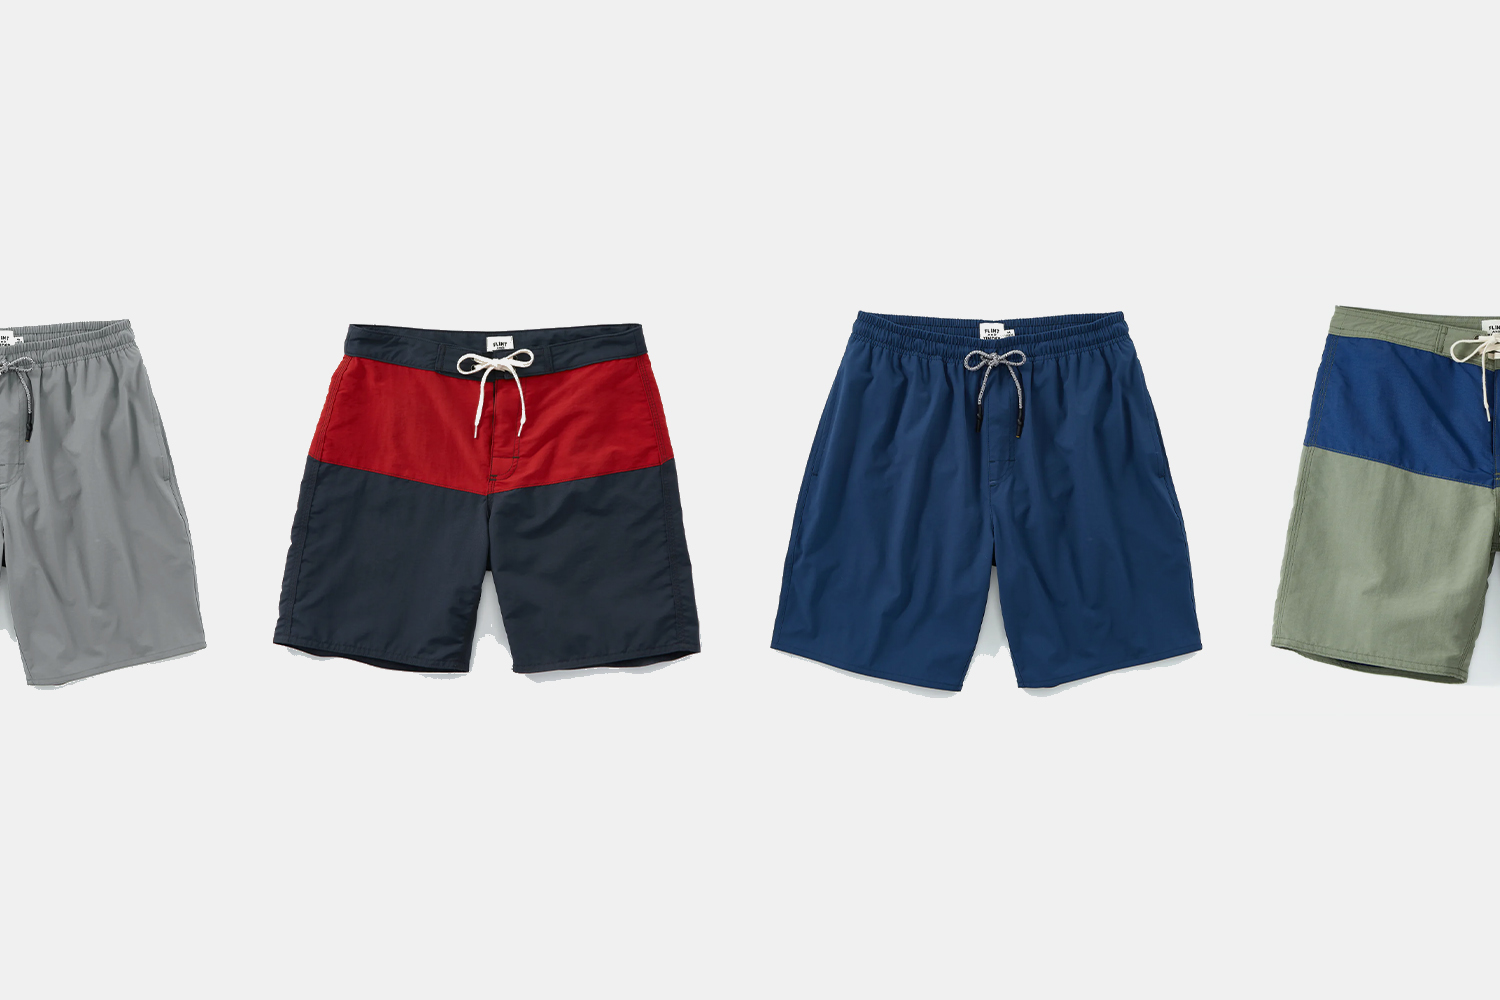 Deal: Flint and Tinder Swim Trunks Are Up to 30% Off at Huckberry